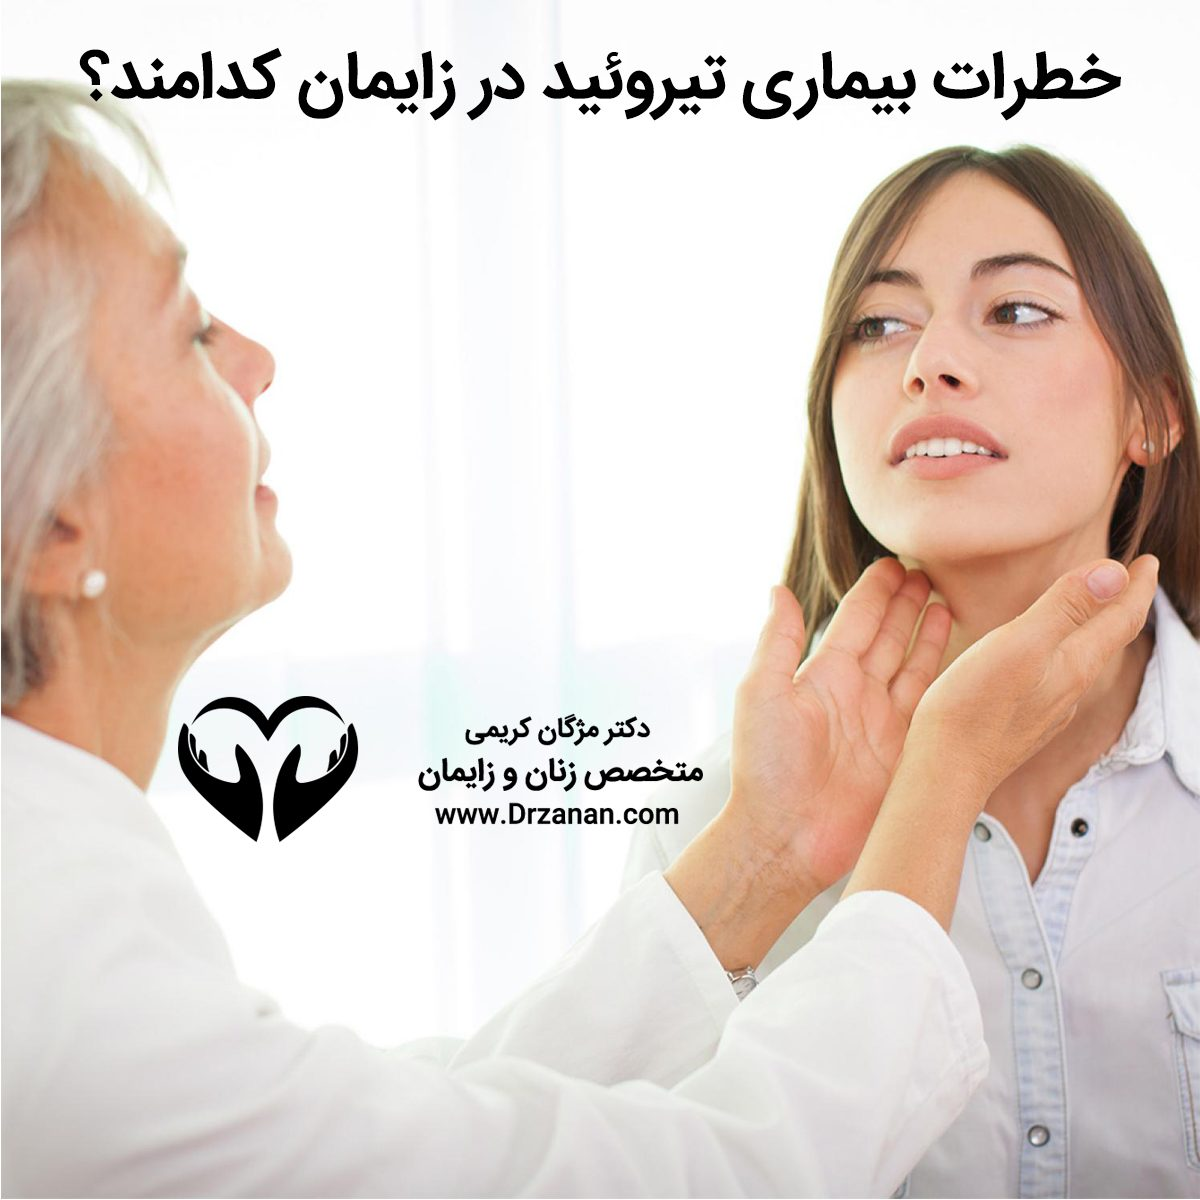 what-are-the-risks-of-thyroid-disease-in-childbirth.jpg-1200x1200.jpg